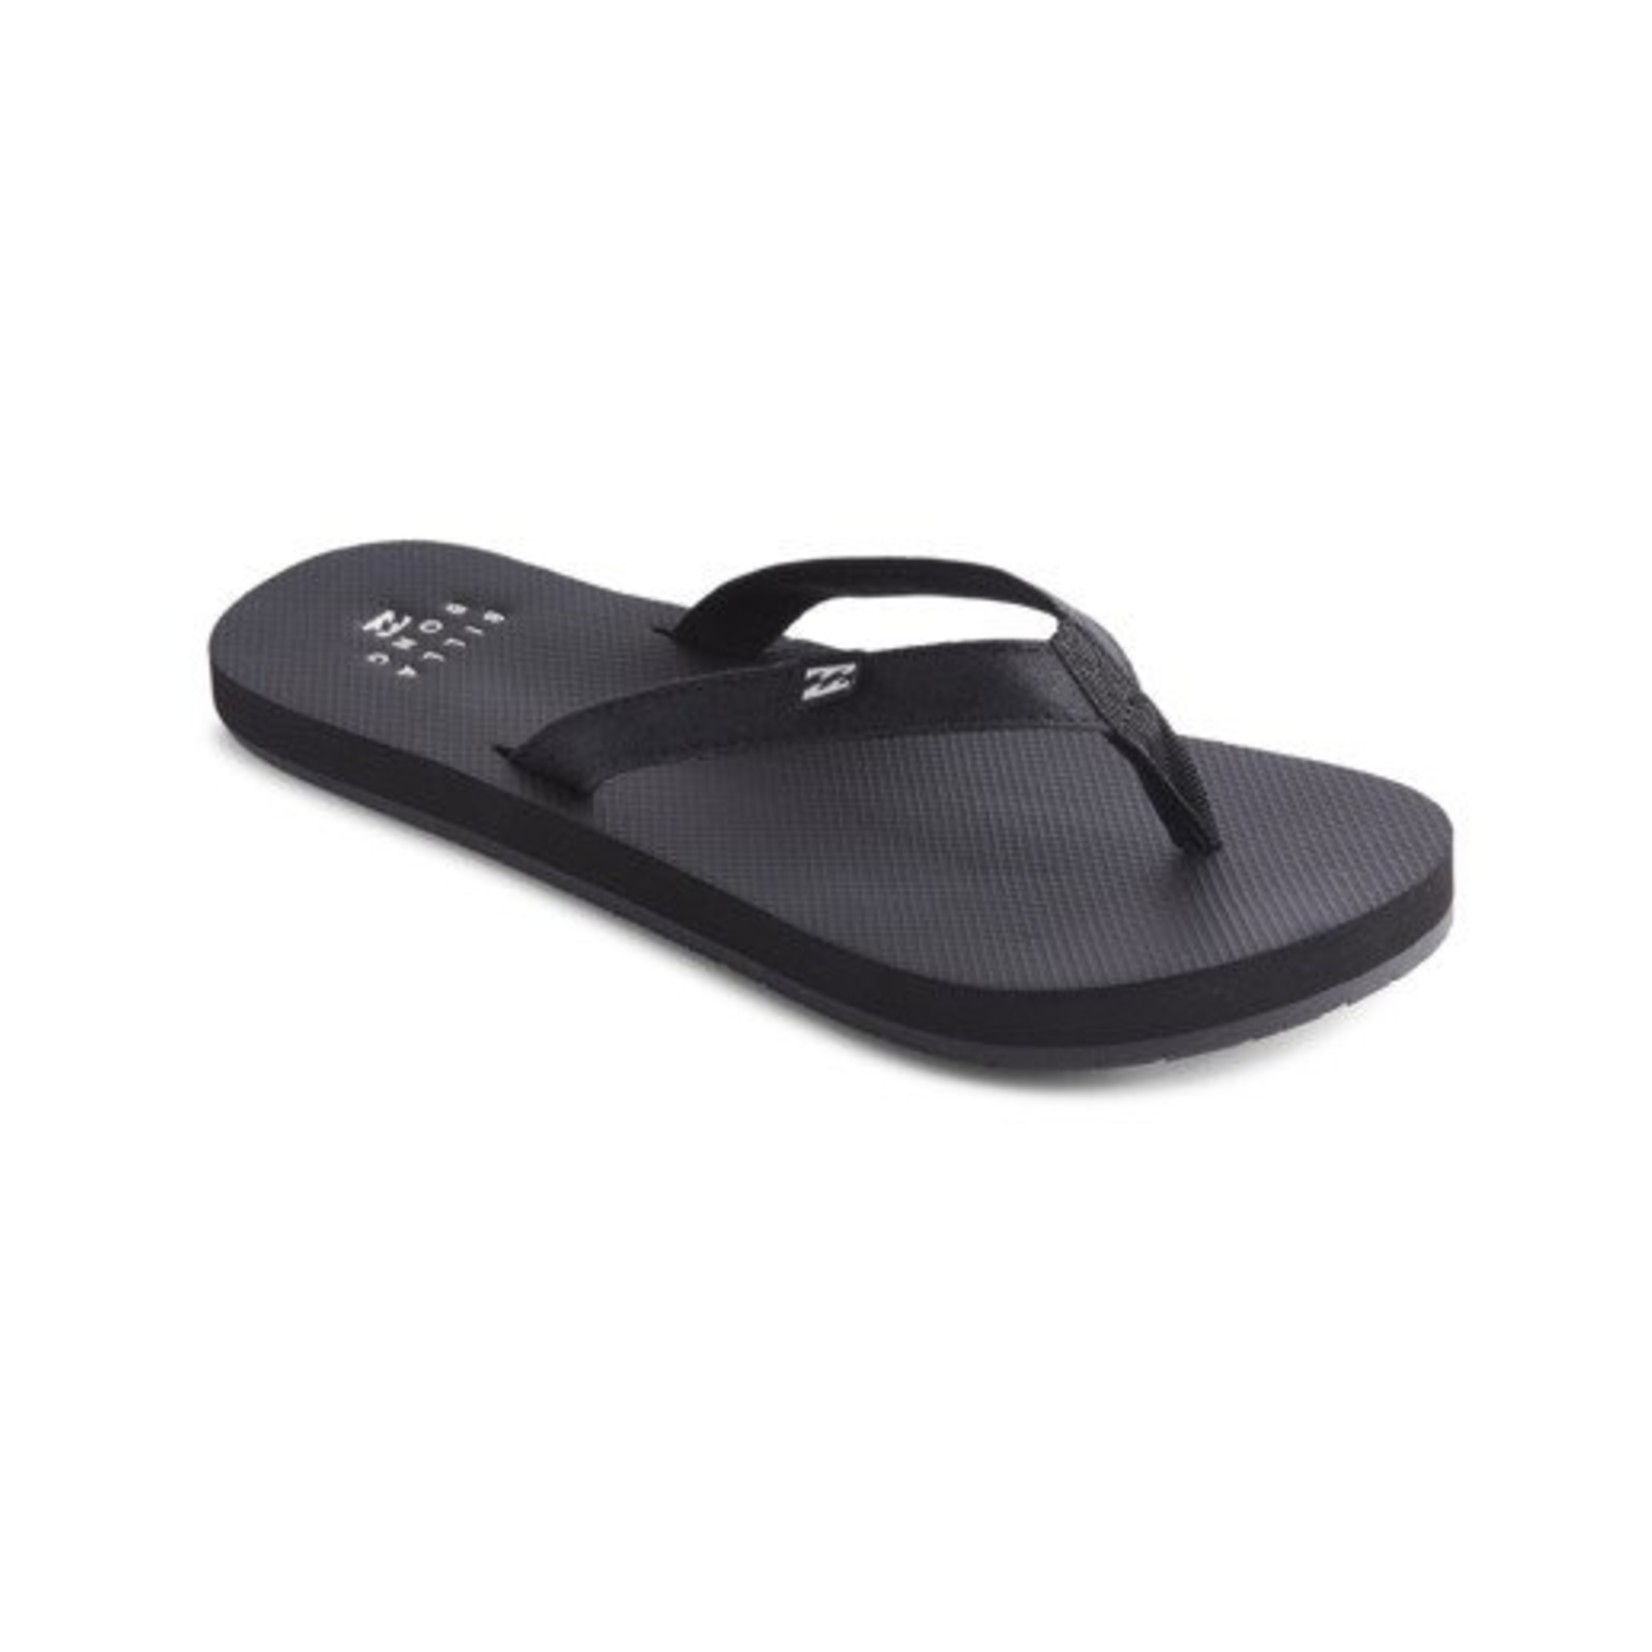 BILLABONG CORAL COVE FLIP FLOP